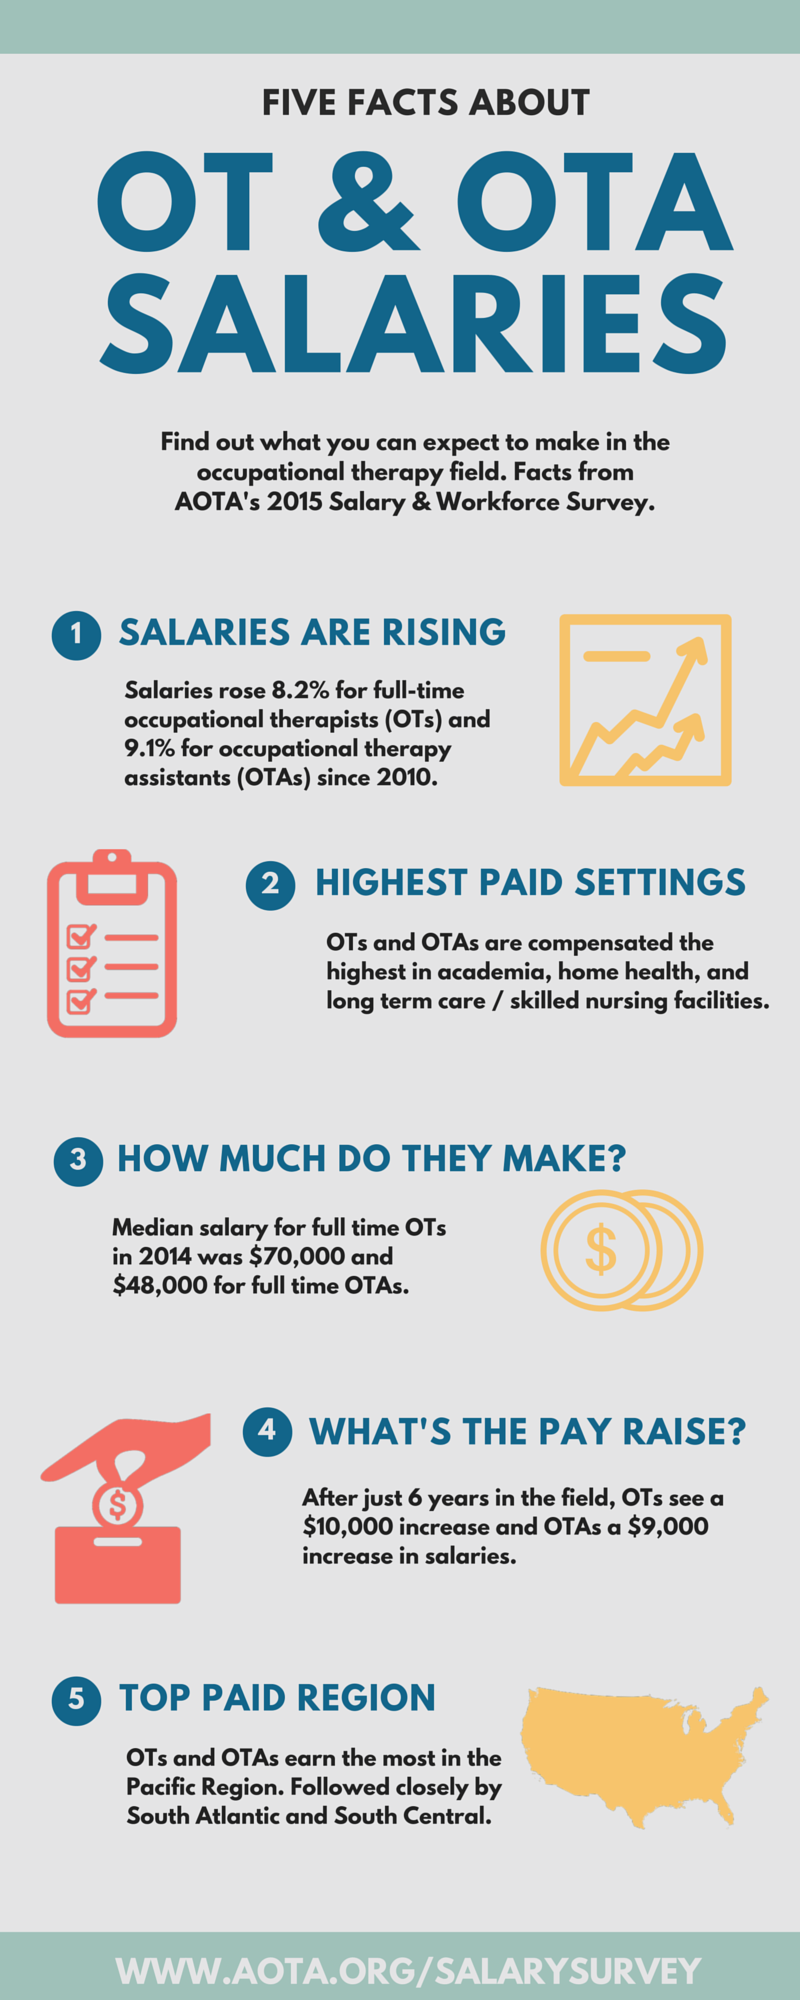 Five Facts About OT & OTA Salaries Infographic - AOTA